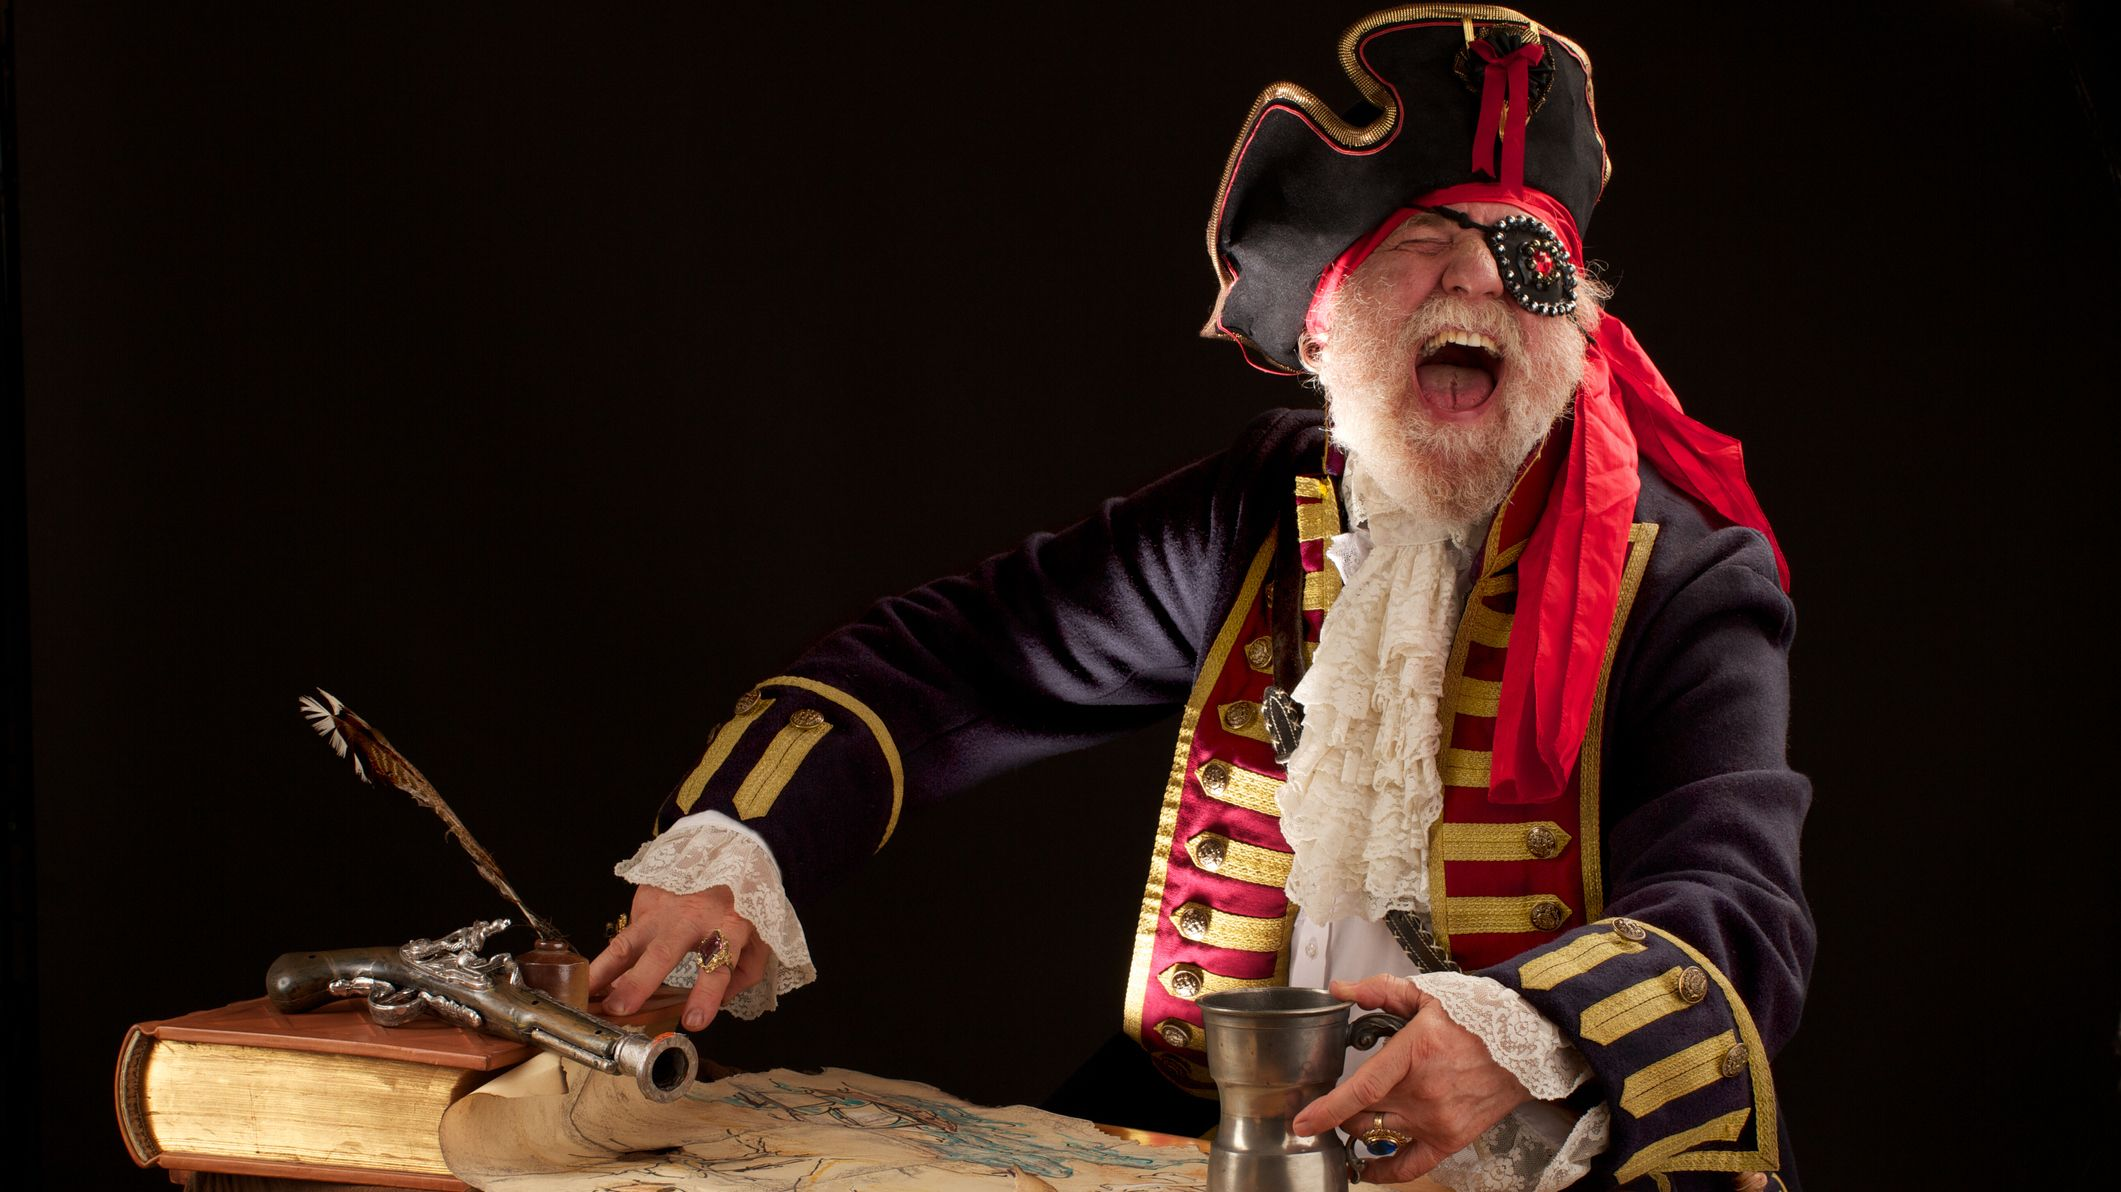 What's the Difference Between a Pirate and a Buccaneer?